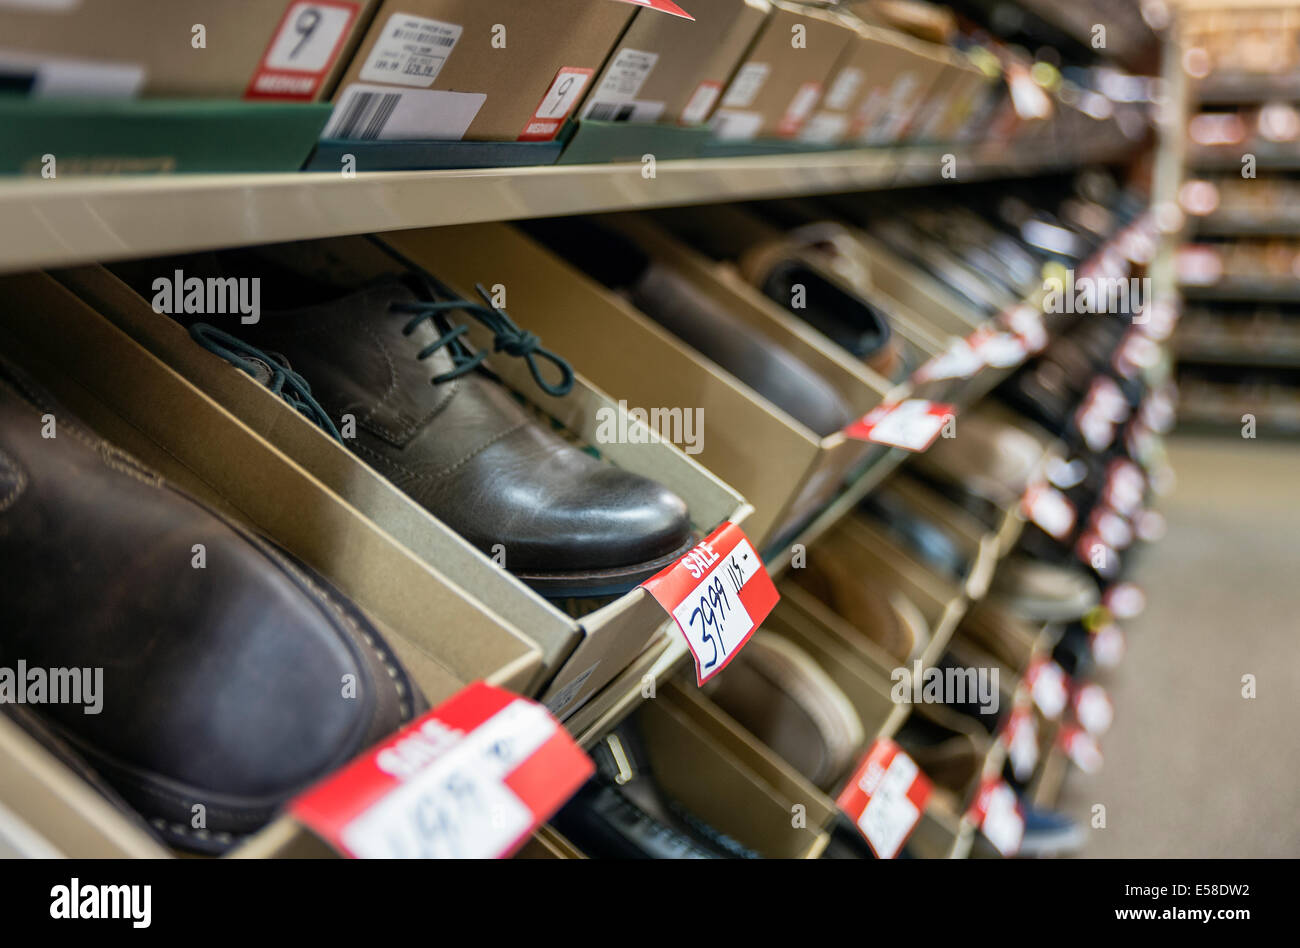 Men's shoes discounted in a store sale. - Stock Image